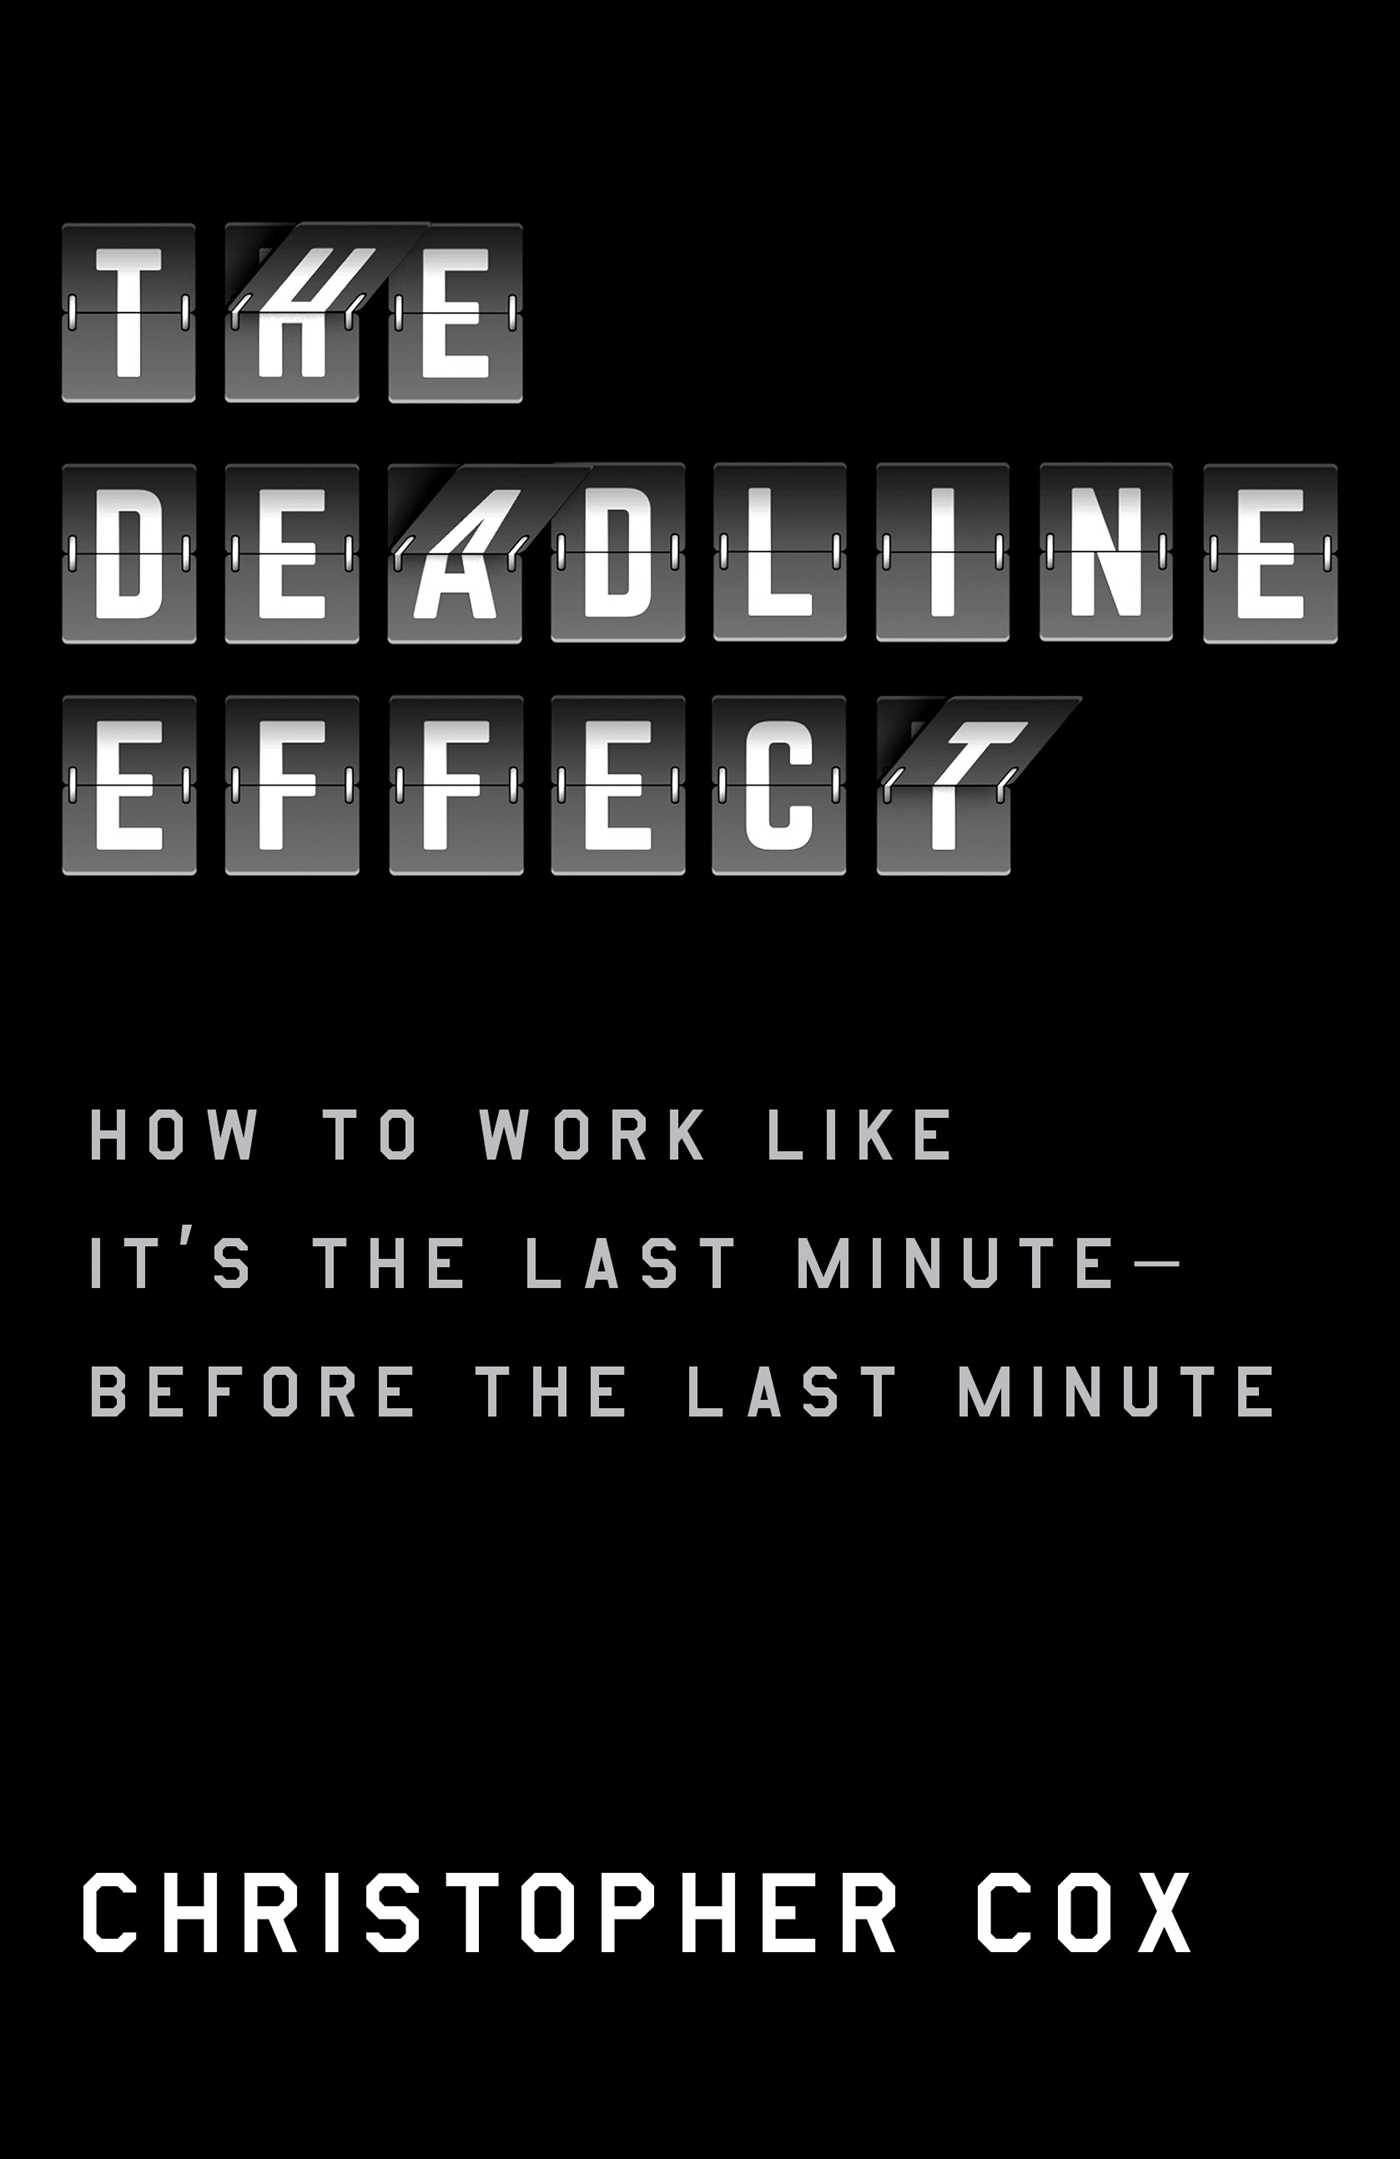 Book Launch: The Deadline Effect by Christopher Cox introduced by Gideon Lewis-Kraus